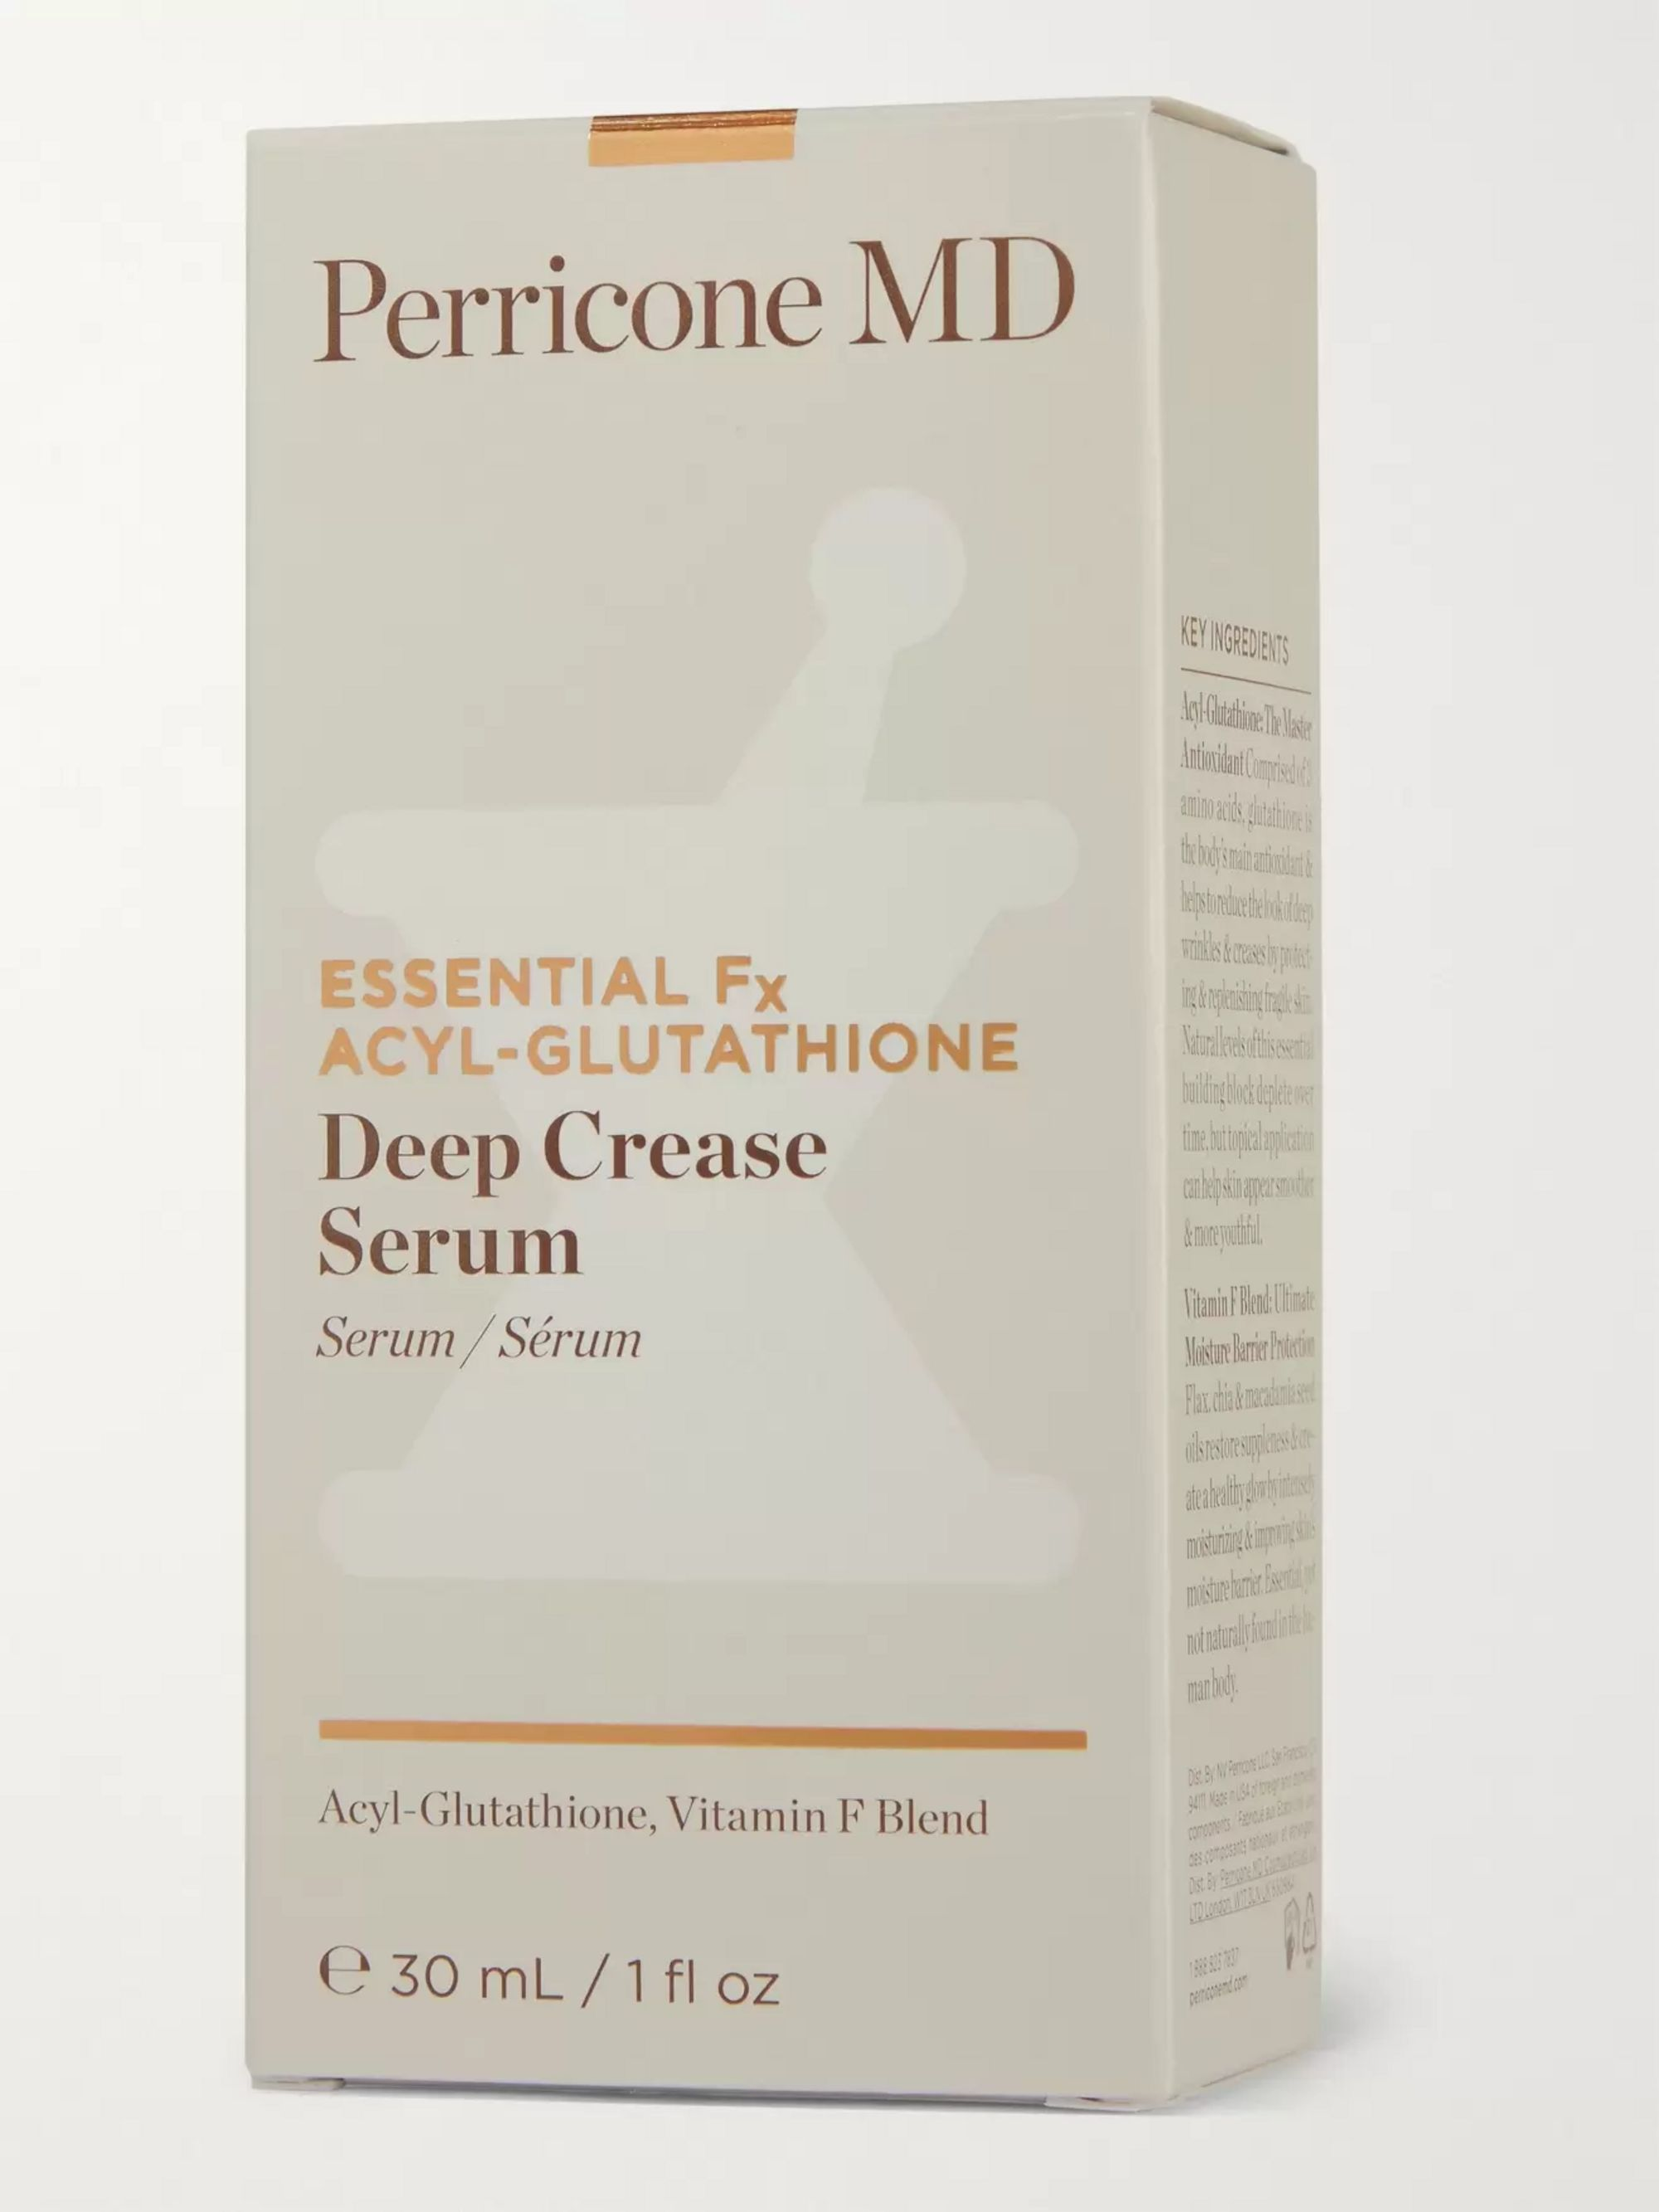 Perricone MD Acyl-Glutathione Deep Crease Serum, 30ml